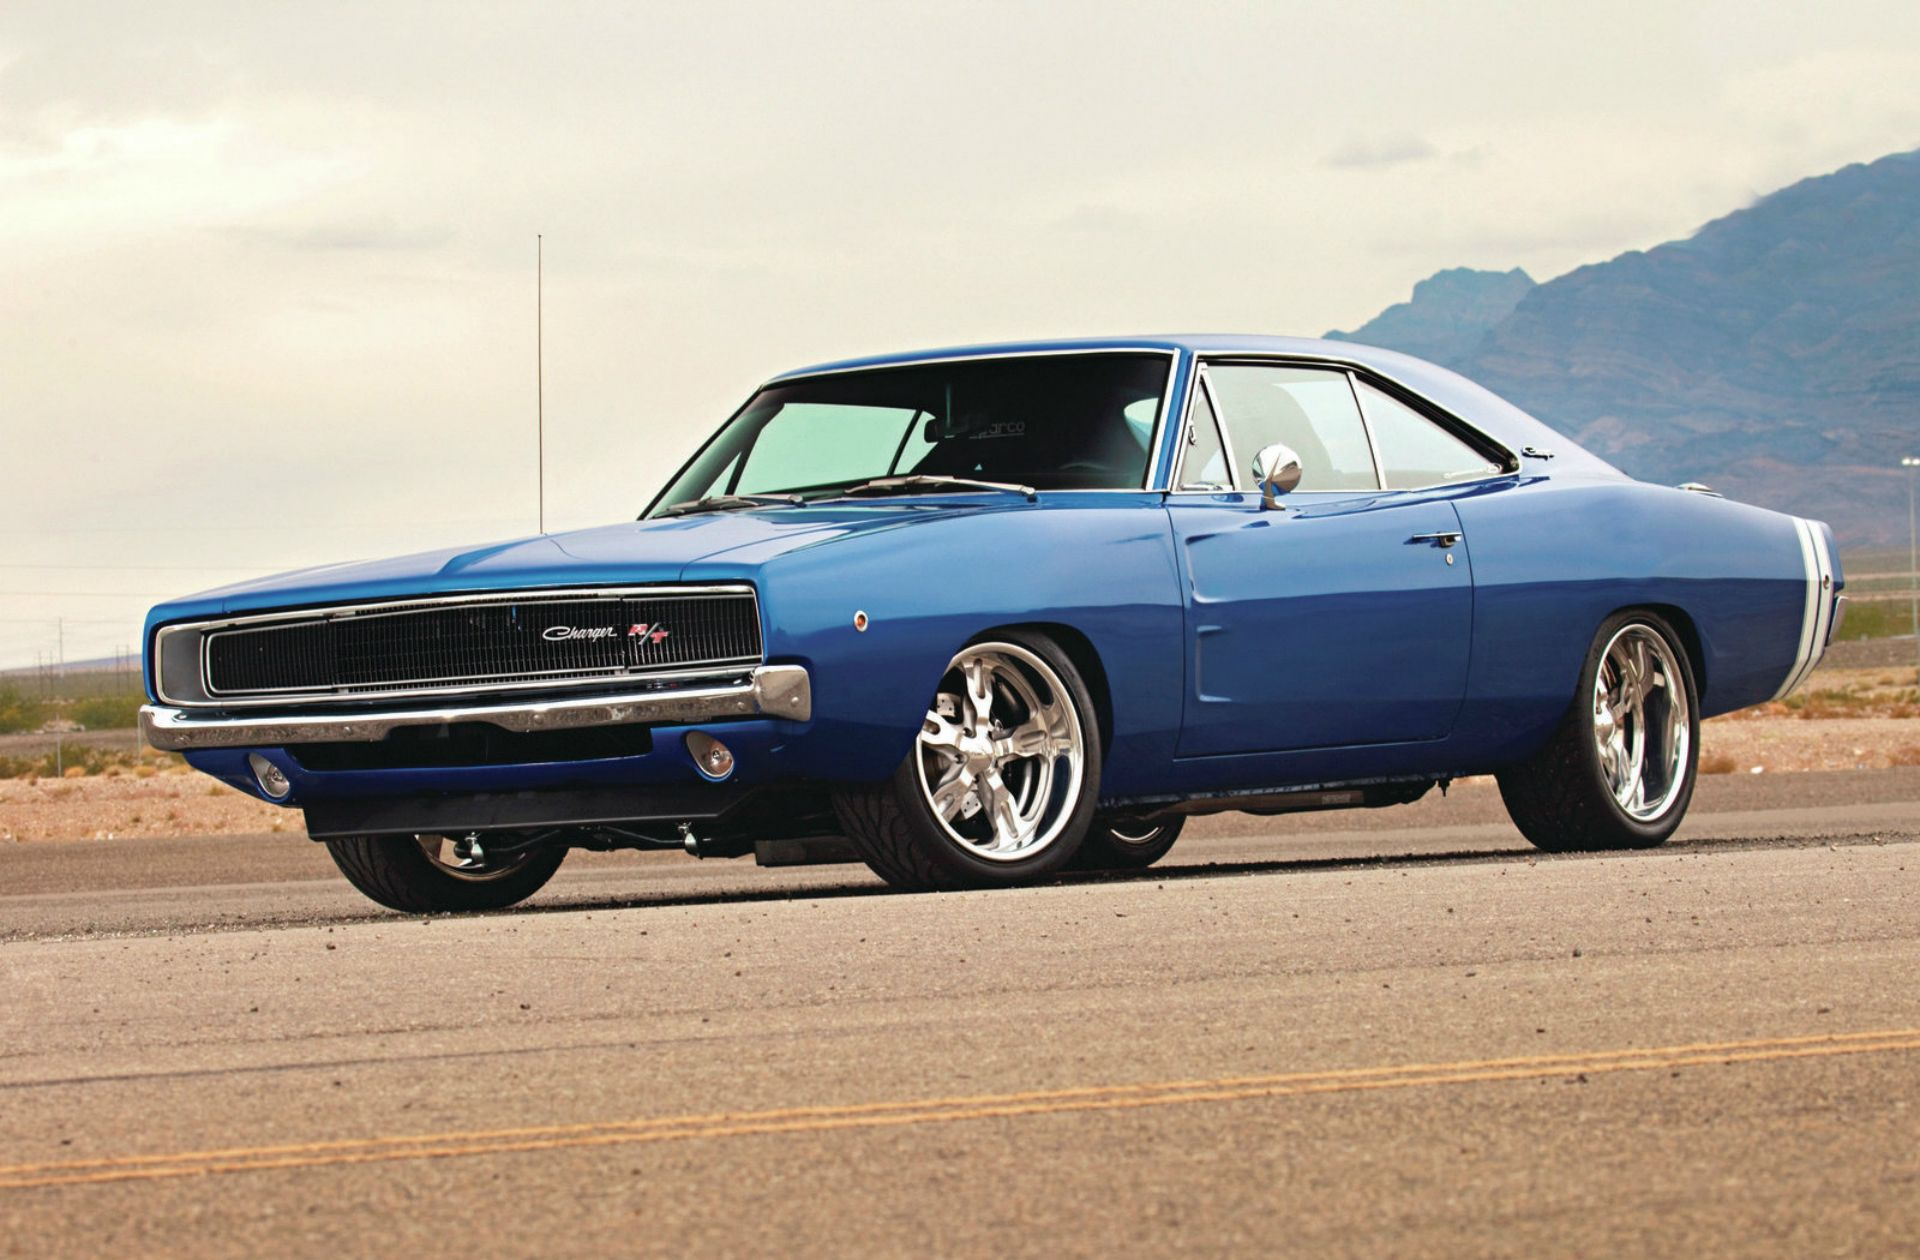 Dodge Charger Desktop Wallpaper Audi Pinterest Dodge